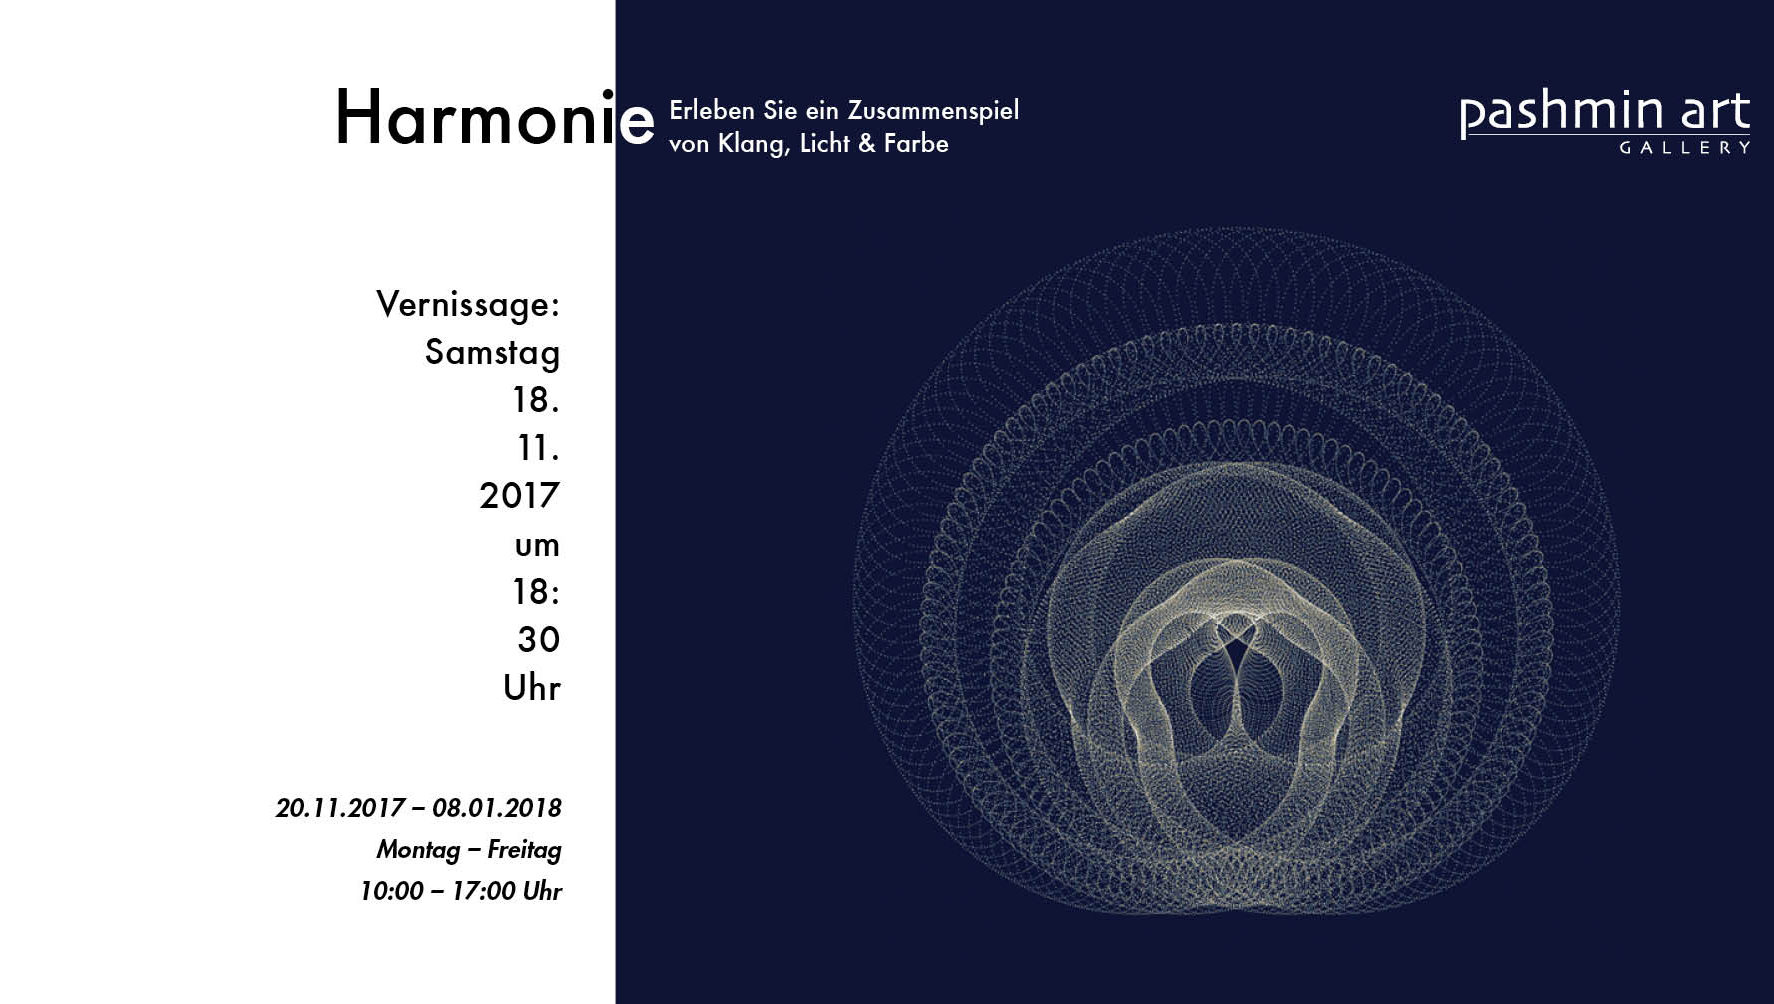 Pashmin Art Gallery Hamburg - Harmony - Light and Music Art